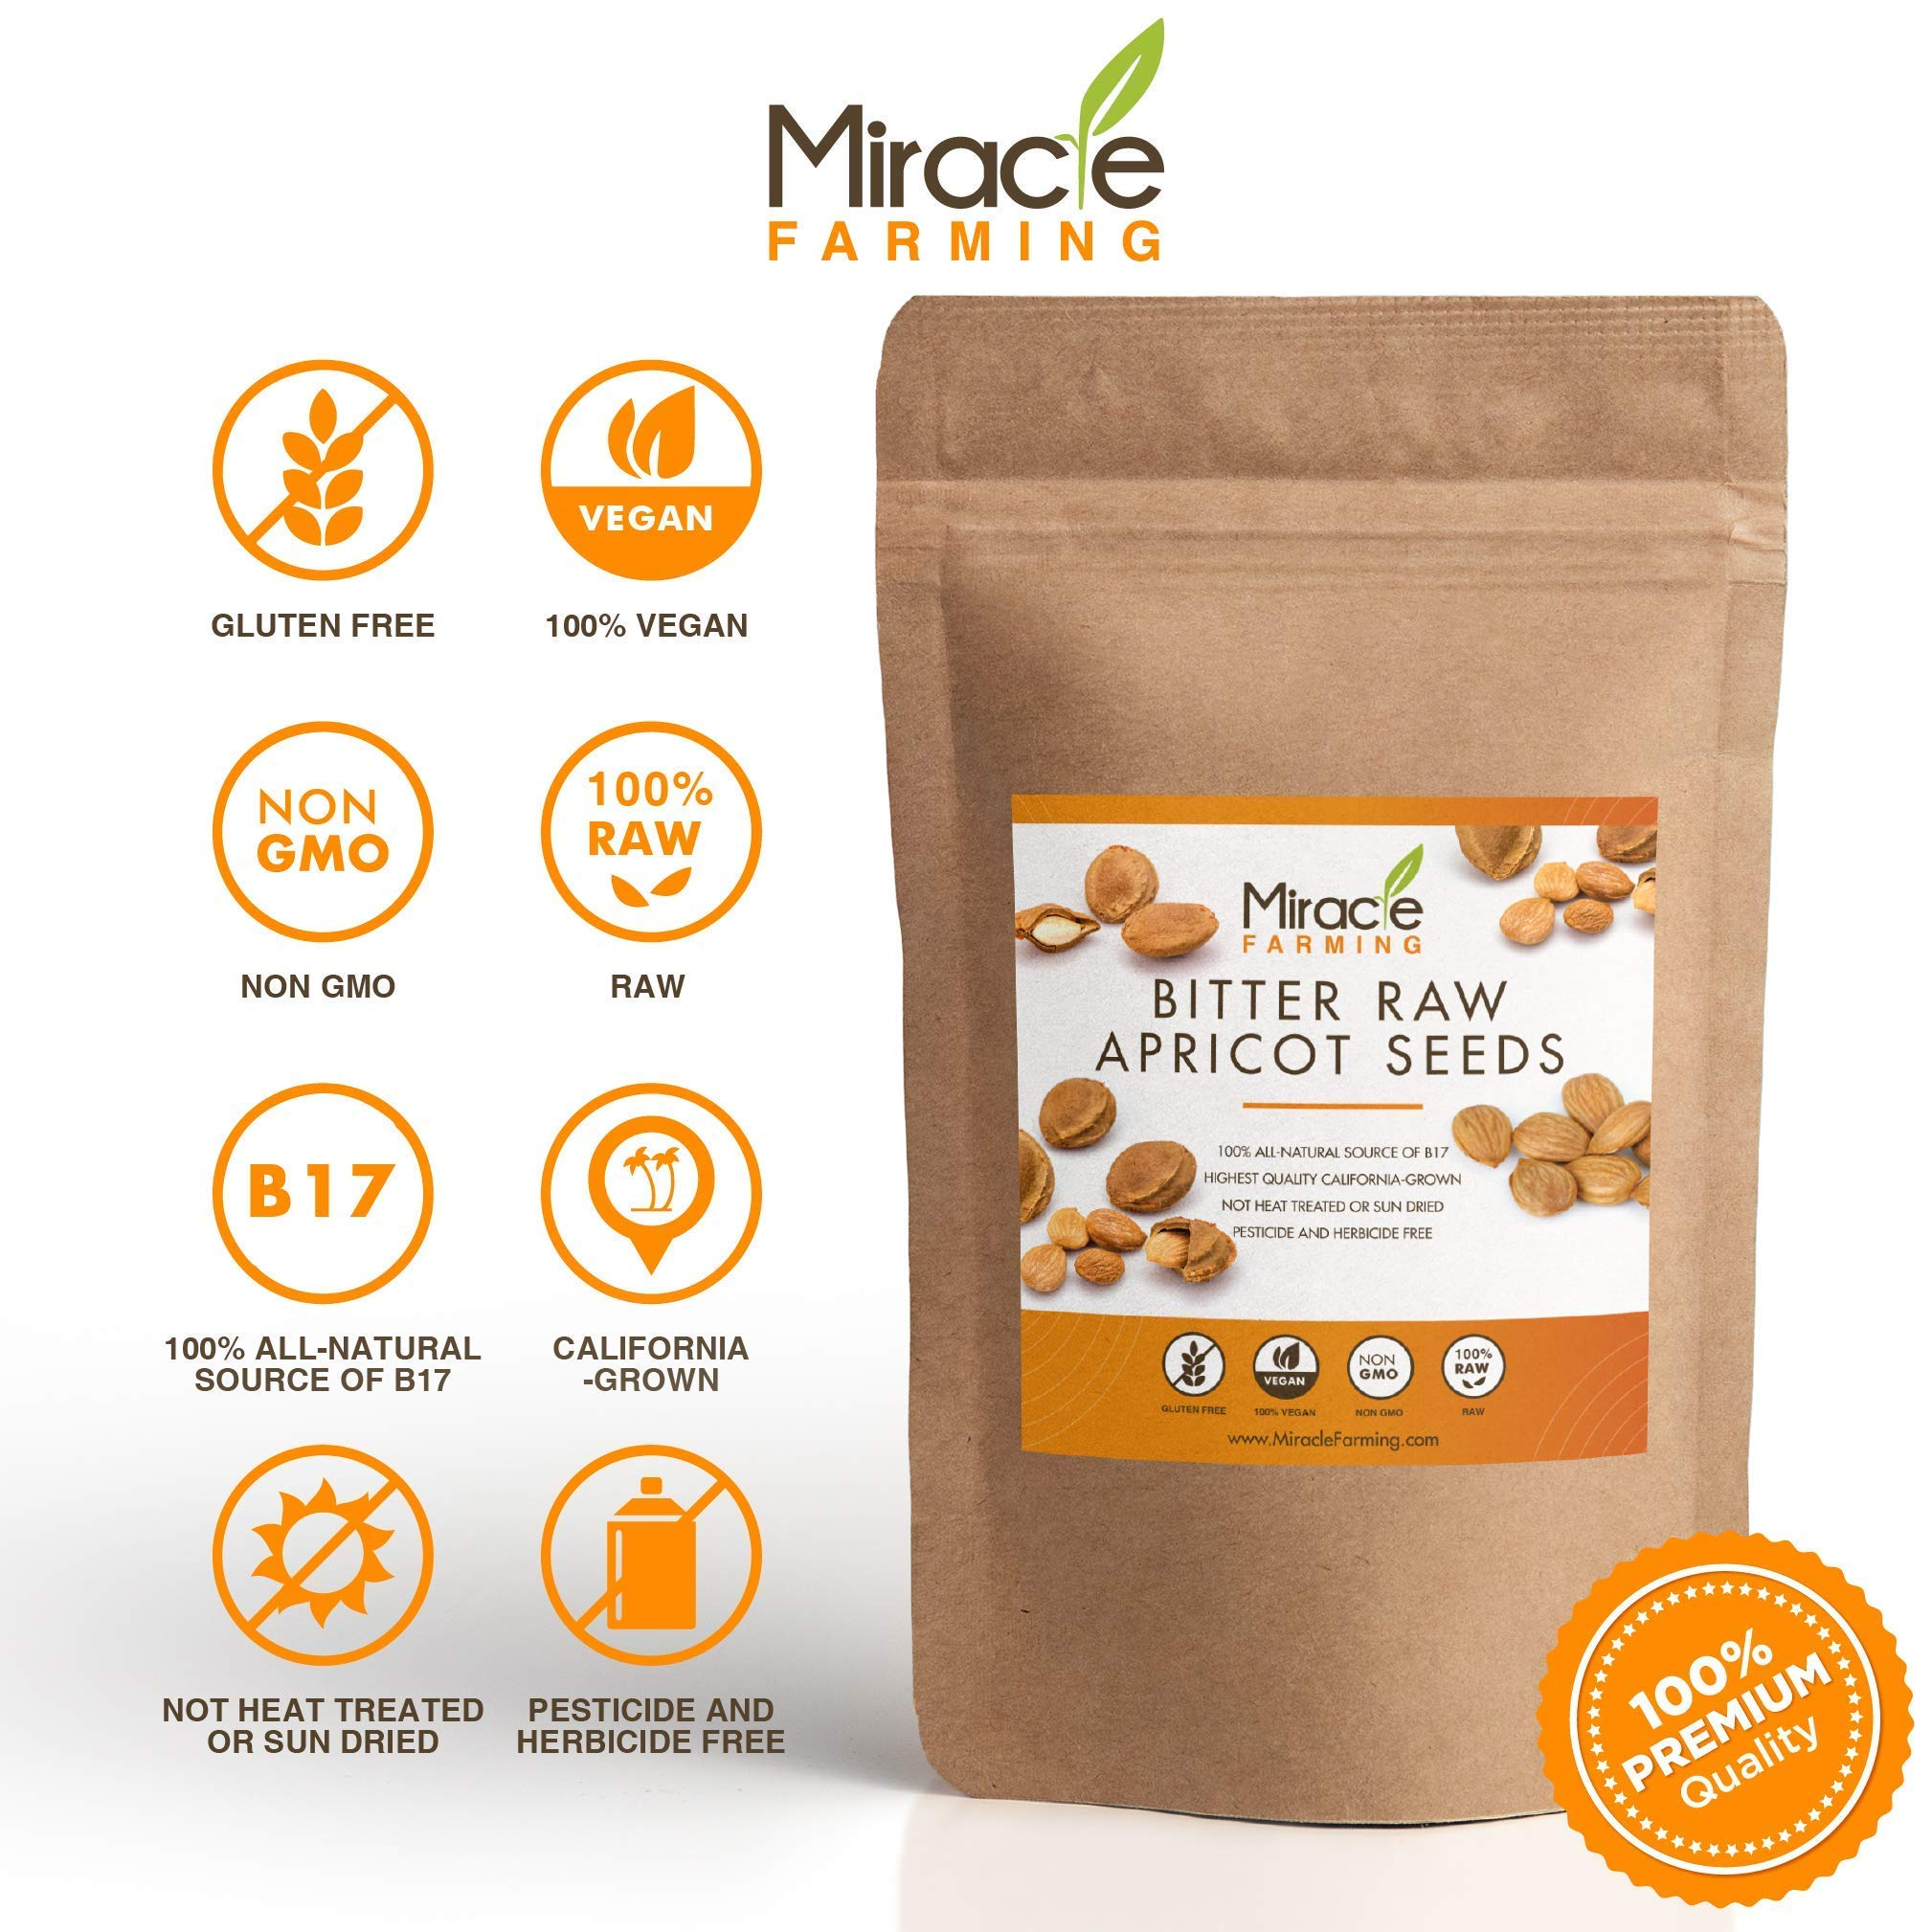 Bitter Apricot Seeds / Kernels (1lb) 16oz, California USA Grown, Pesticide and Herbicide-Free, Non GMO, Vegan, Raw & Large, The Best Natural Source of Vitamin B17, In an Easy Resealable Pouch by Miracle Farming (Image #3)